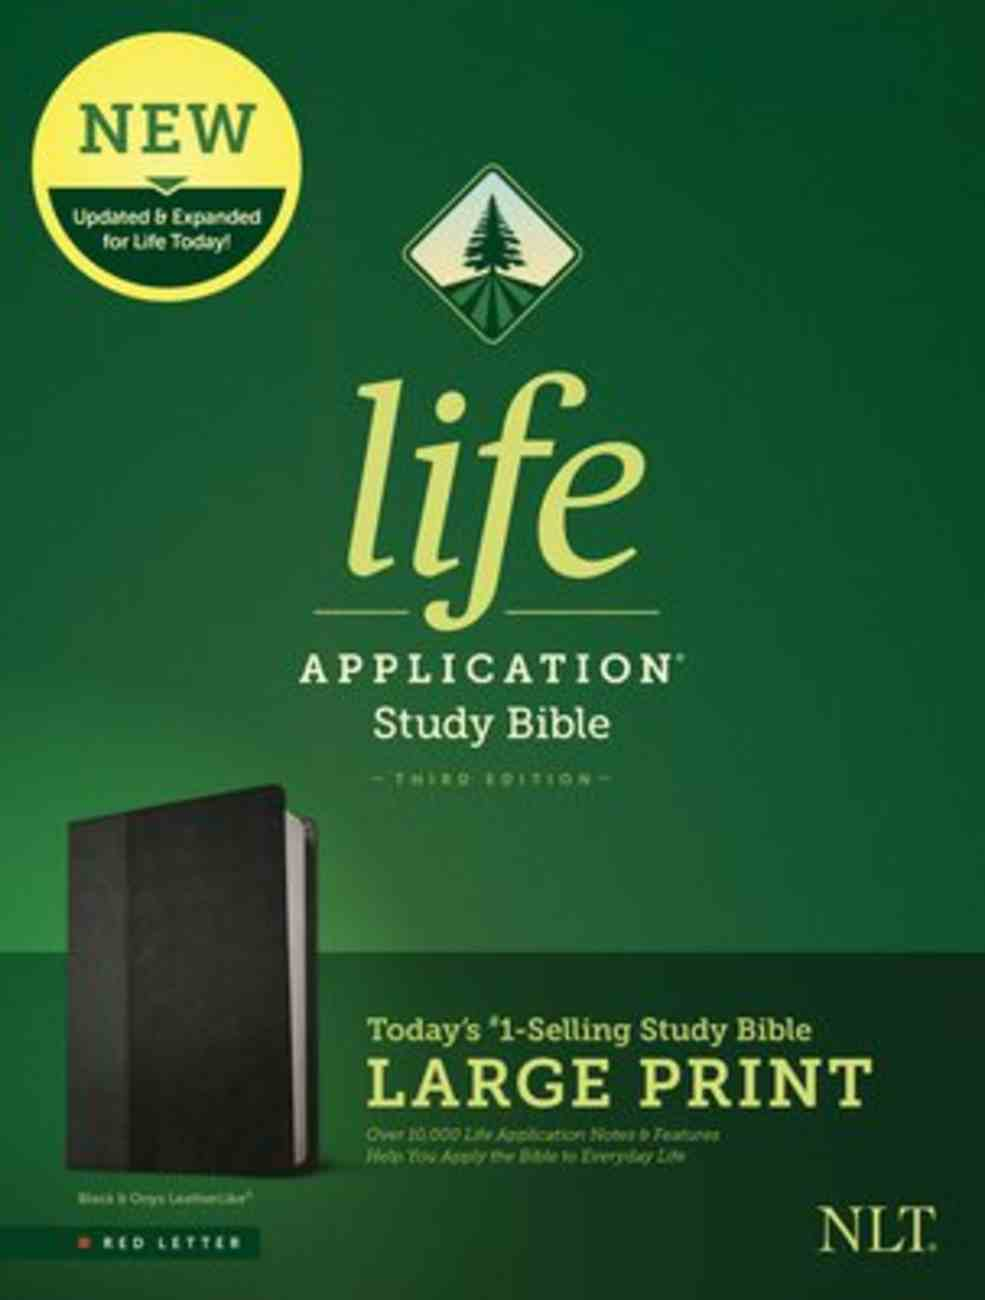 NLT Life Application Study Bible 3rd Edition Large Print Black/Onyx (Red Letter Edition) Imitation Leather